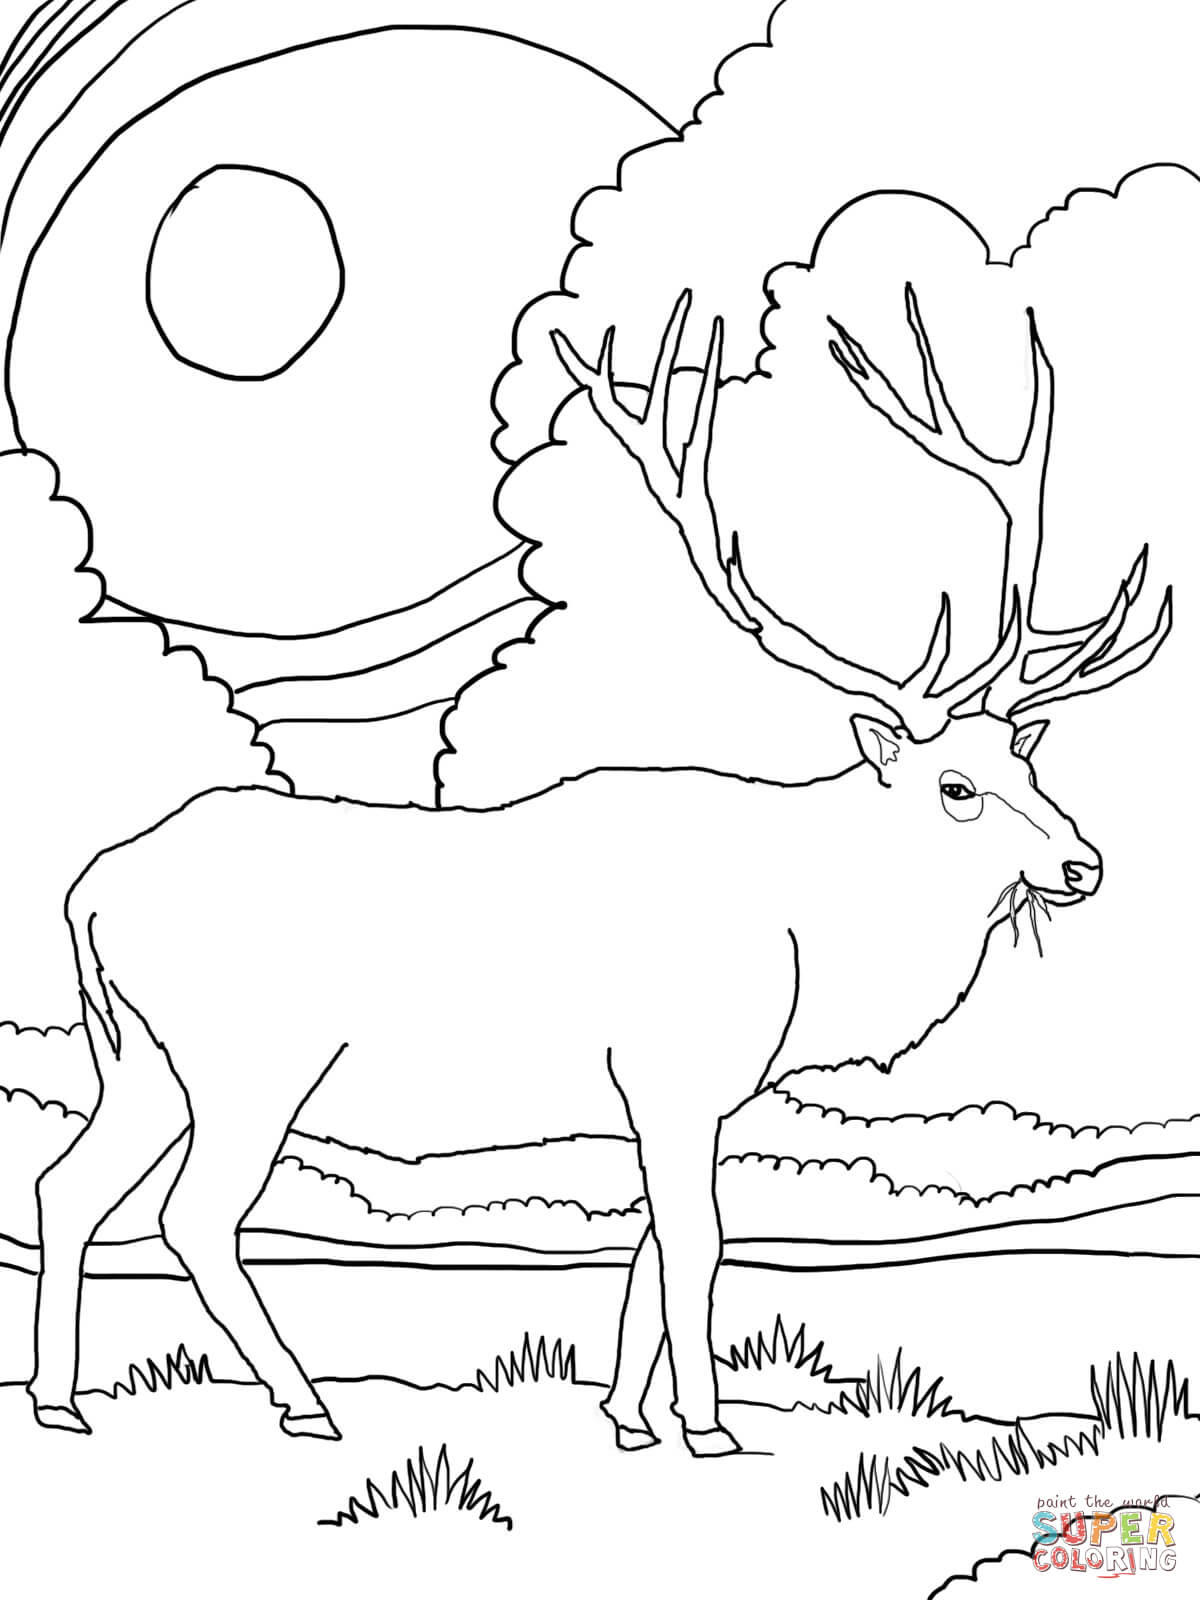 free online coloring printable pages - photo#44